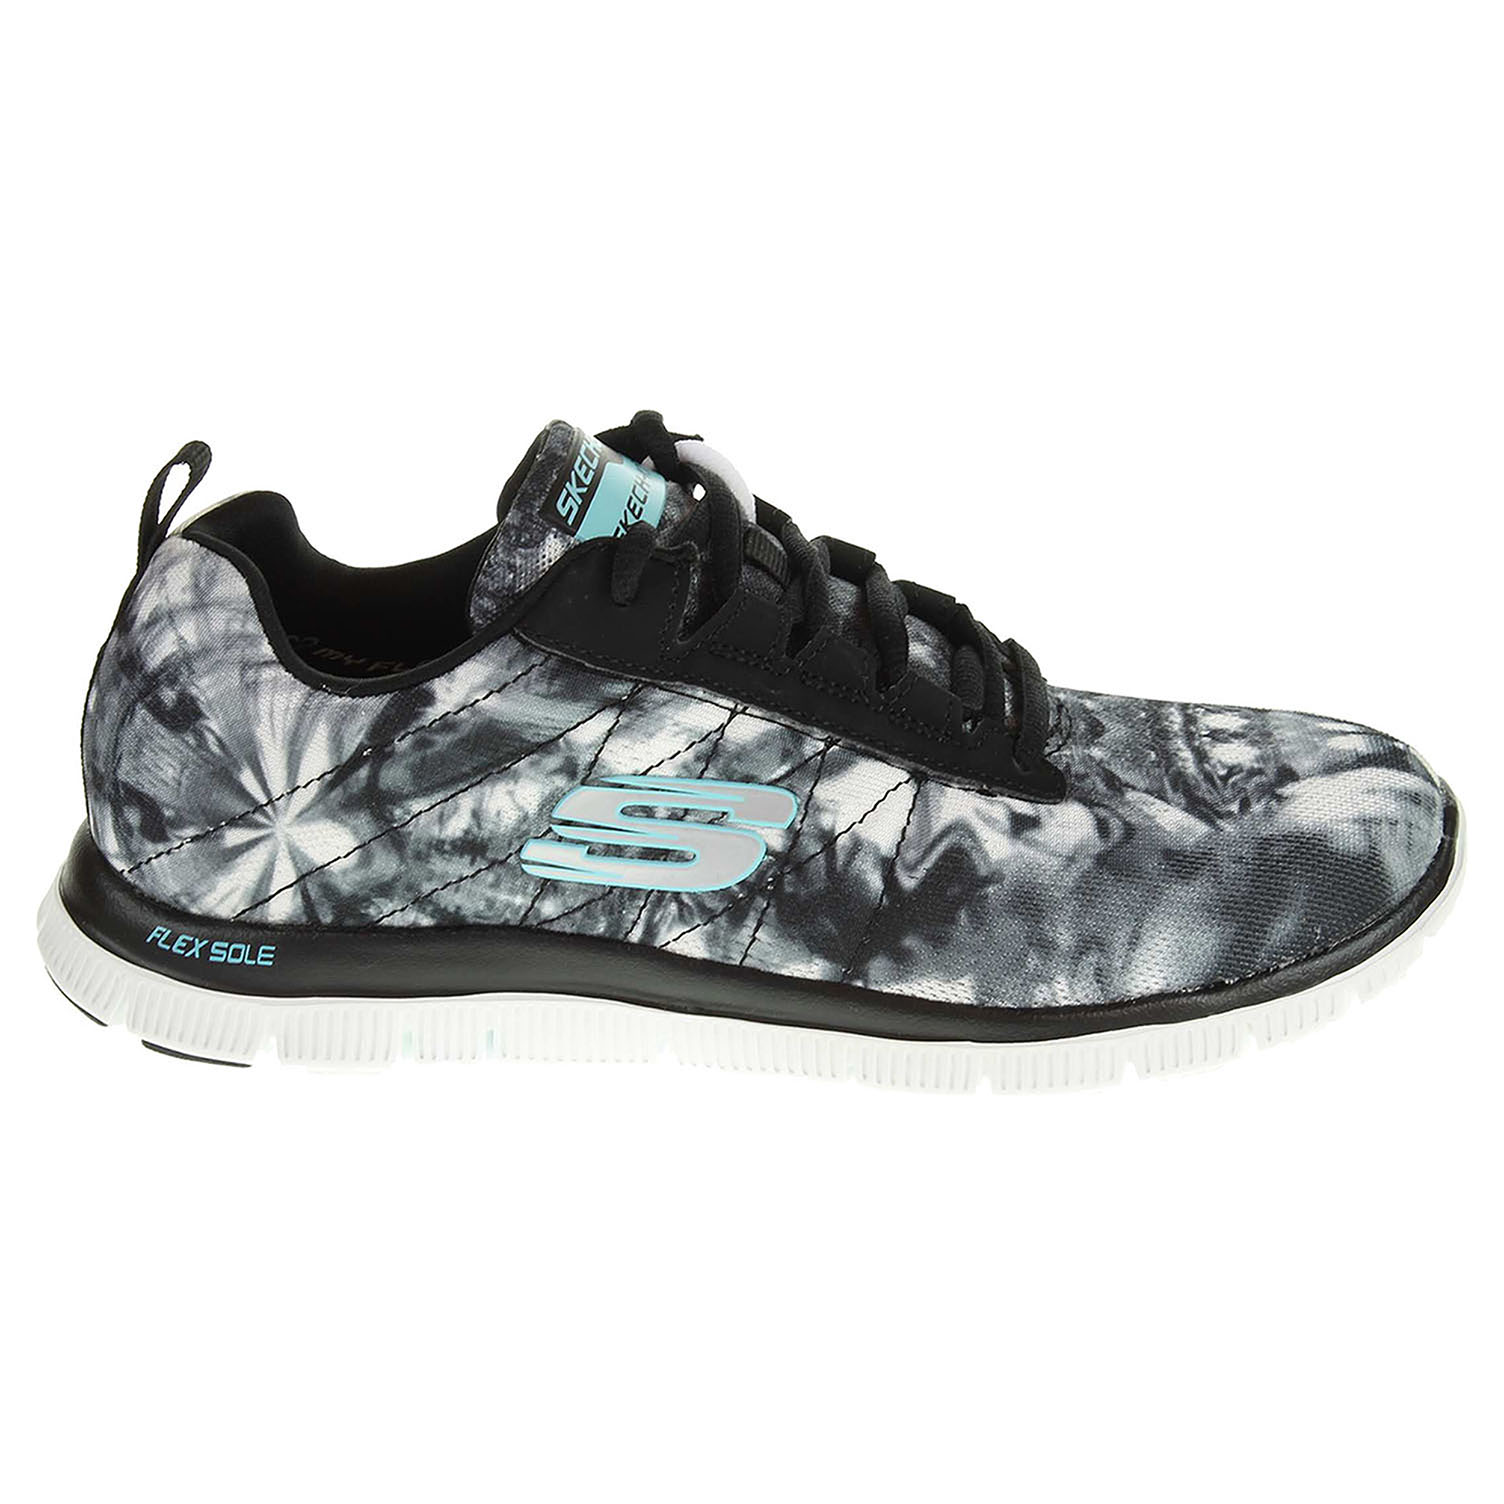 Skechers Cosmic Rays black-white 37